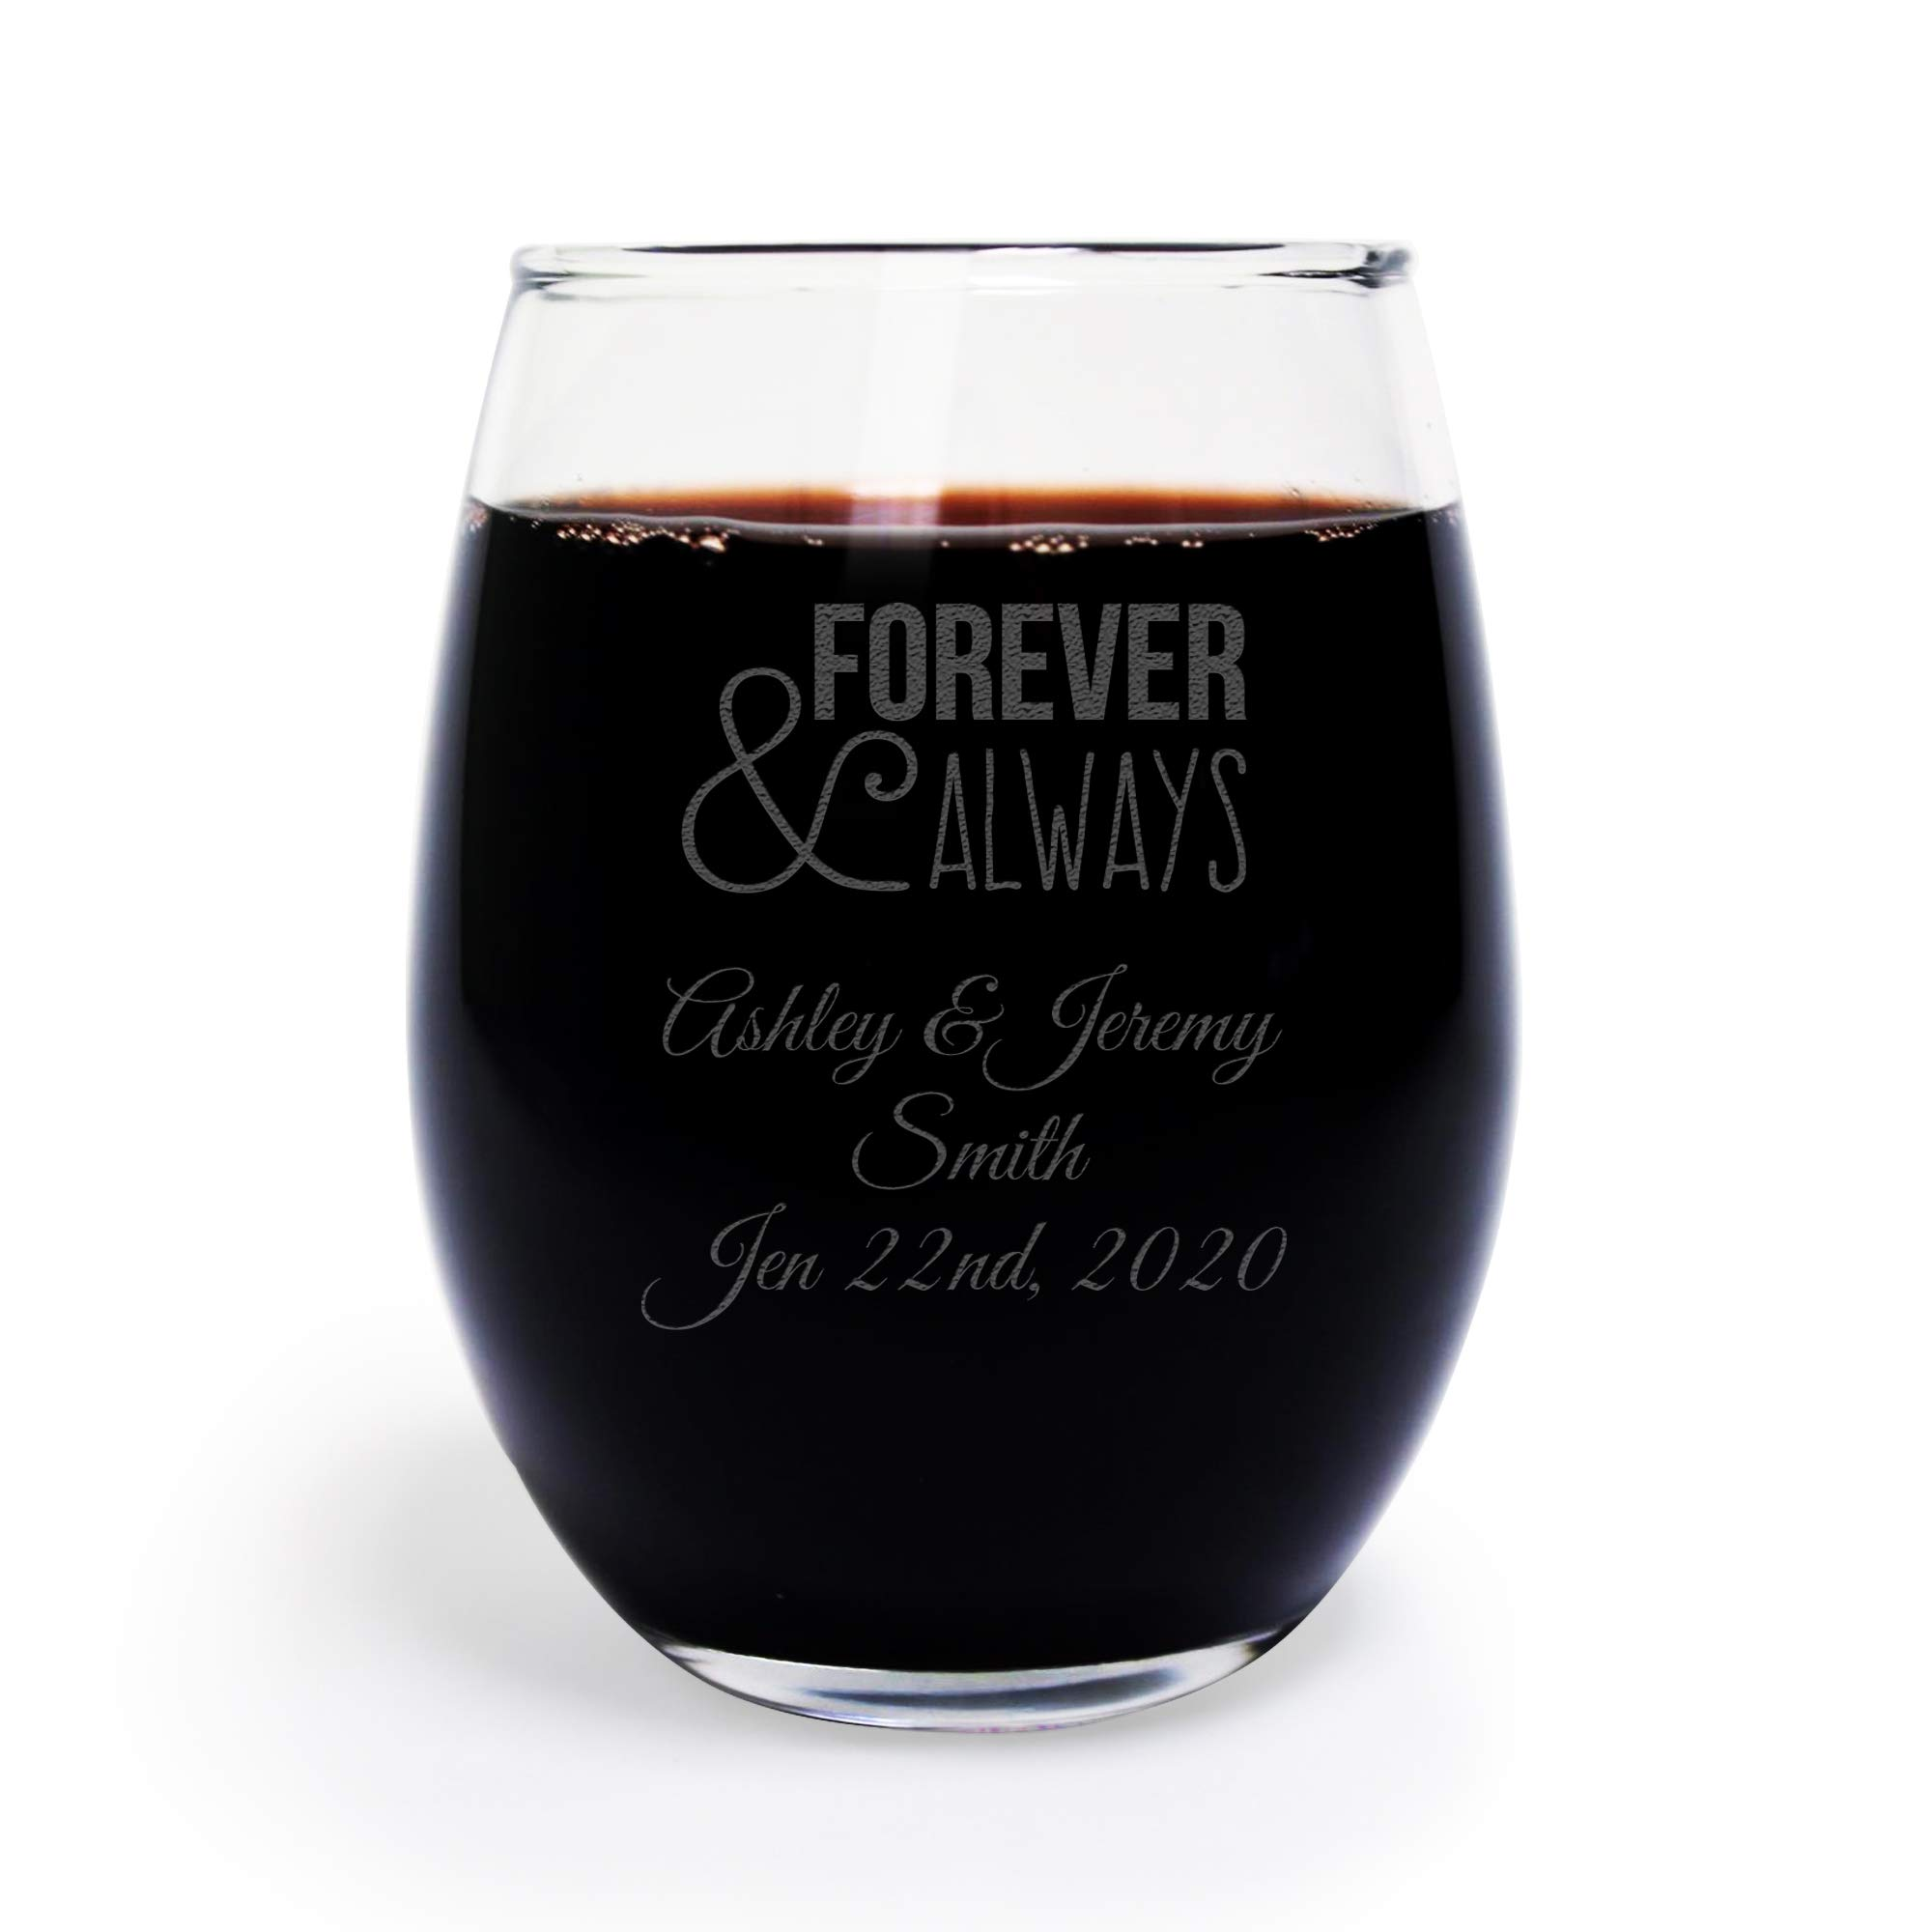 9 Oz Engraved Forever & Always Wine Glass, Stemless Wine Glasses, Customized for You Great Anniversary or Couples Gift, 144 Count